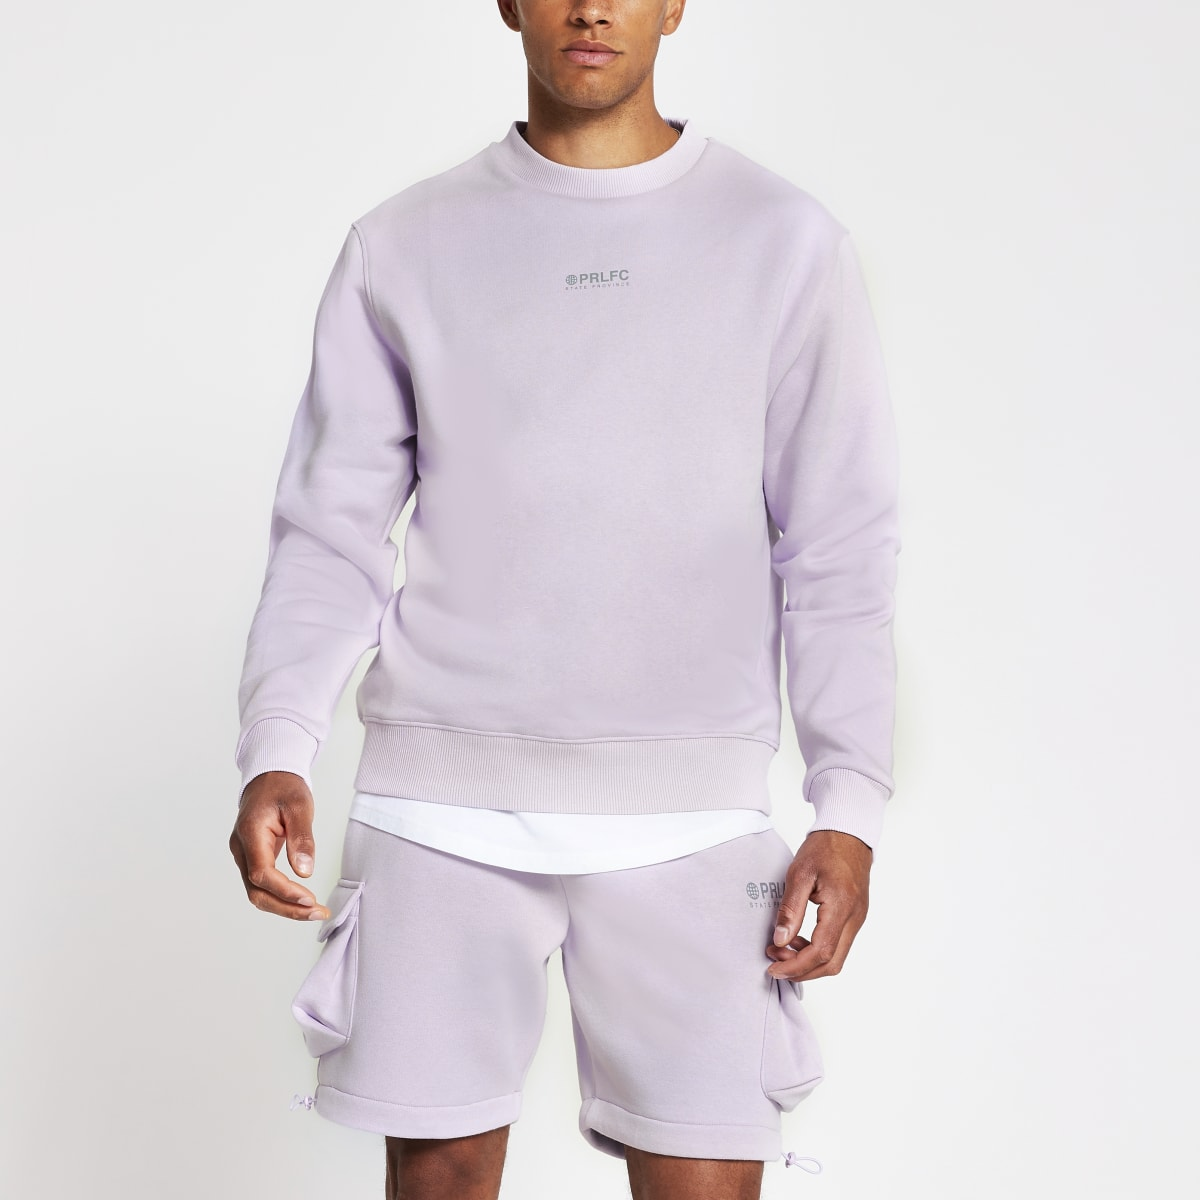 Prolific purple reflective sweatshirt